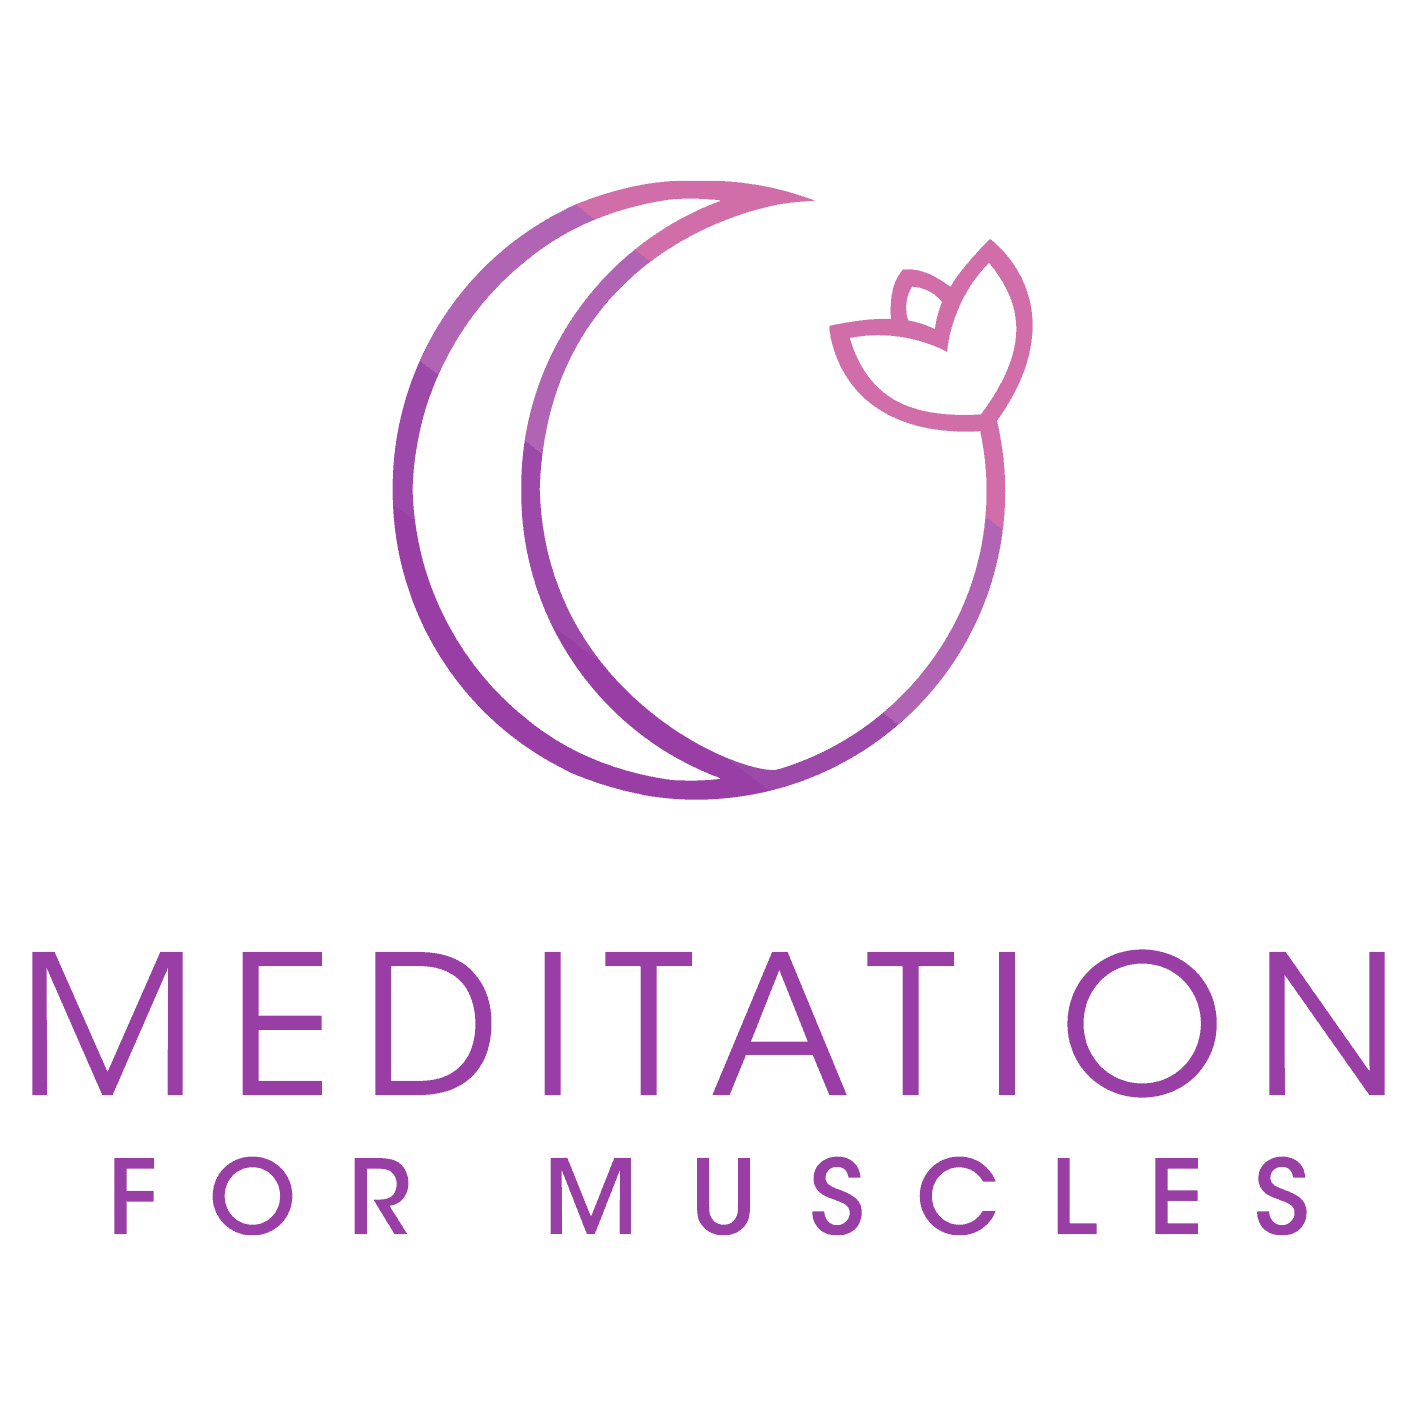 Welcome to Meditation for Muscles | Eagle Rock & Redondo Beach